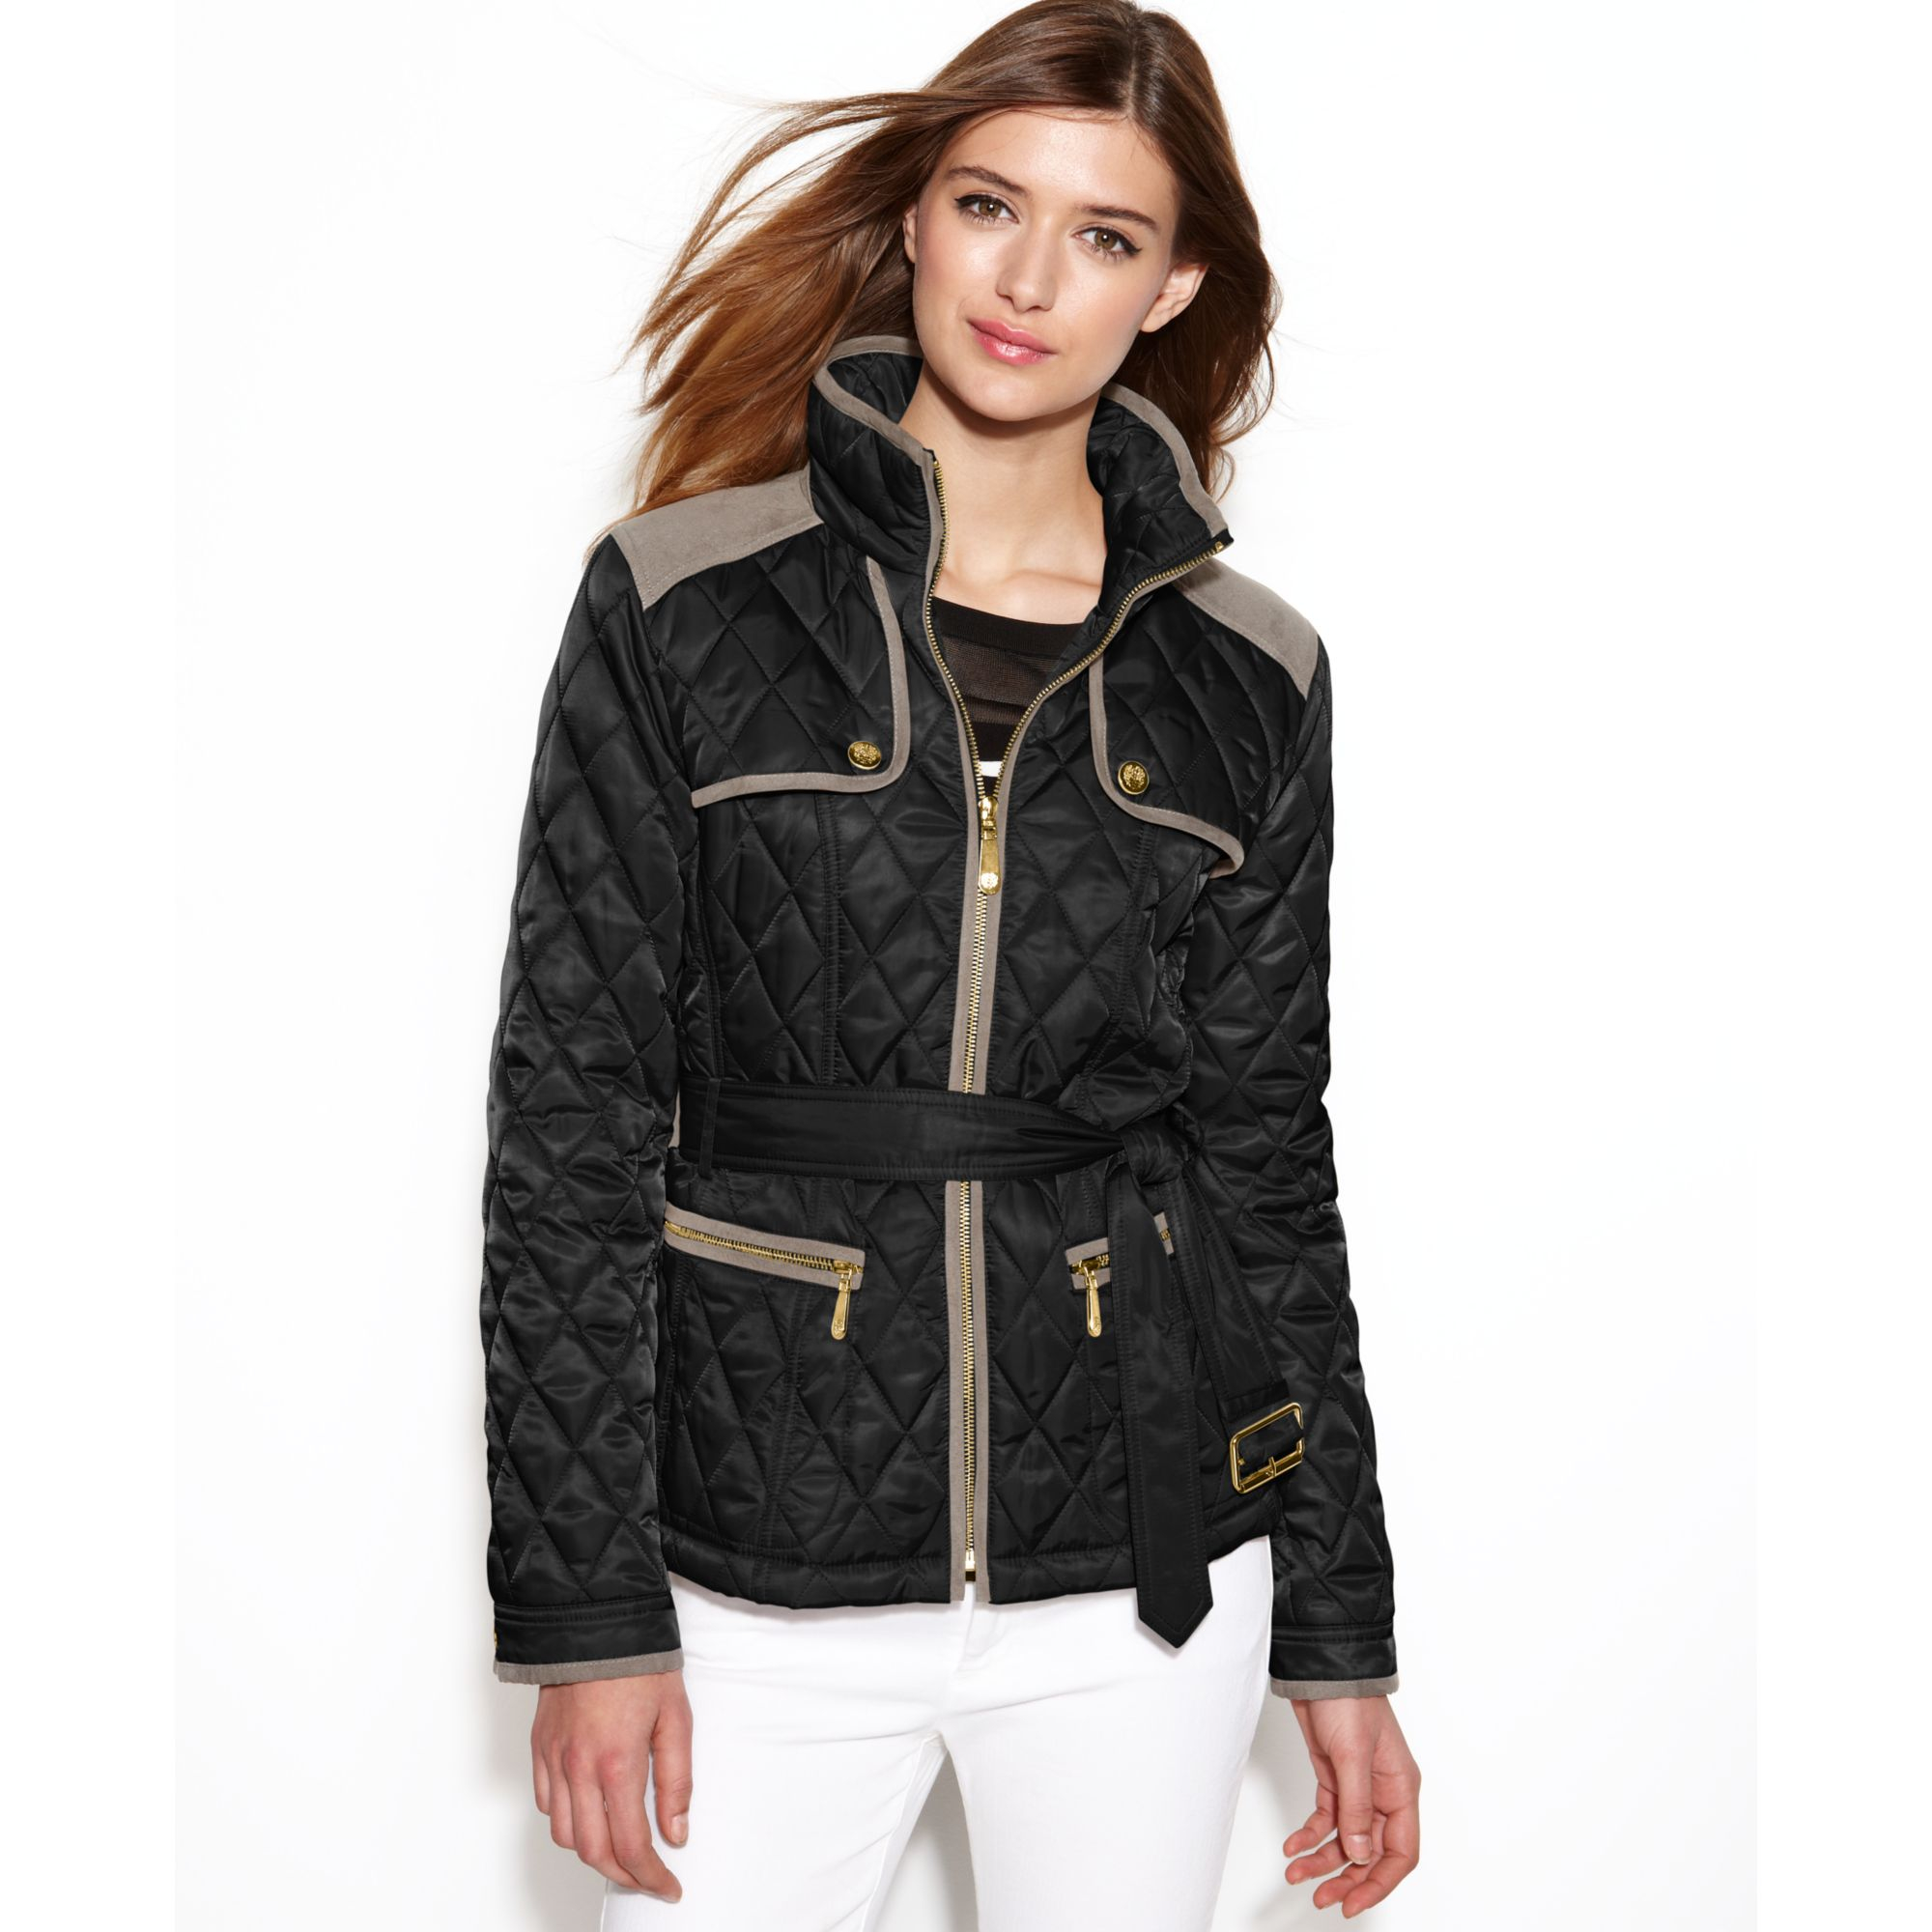 here it fur men peacoats quilted best andrew sale coats down marc winter fox with mens buy jacket trim parkas vince in lifestyle quilt jackets for parka camuto black mac